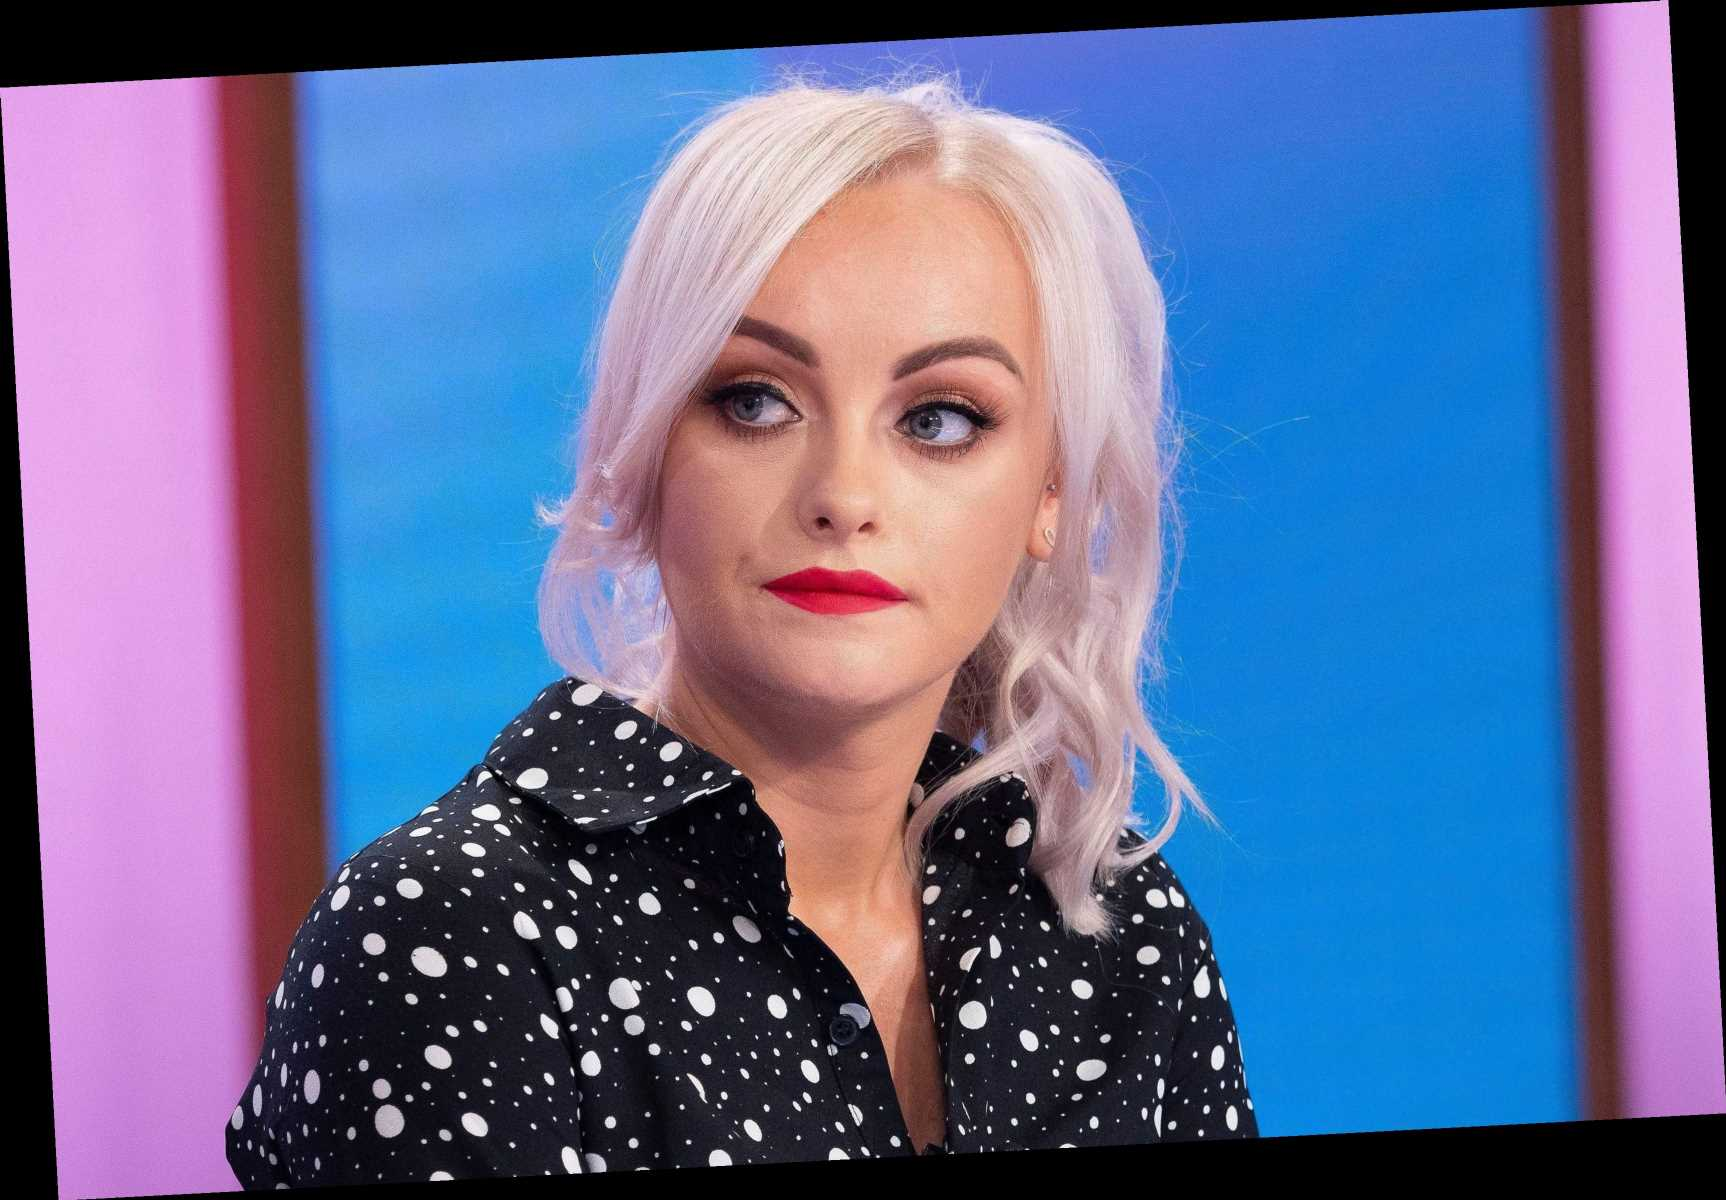 Coronation Street star Katie McGlynn is 'grieving' Sinead Tinker and says her death affected her mental health – The Sun